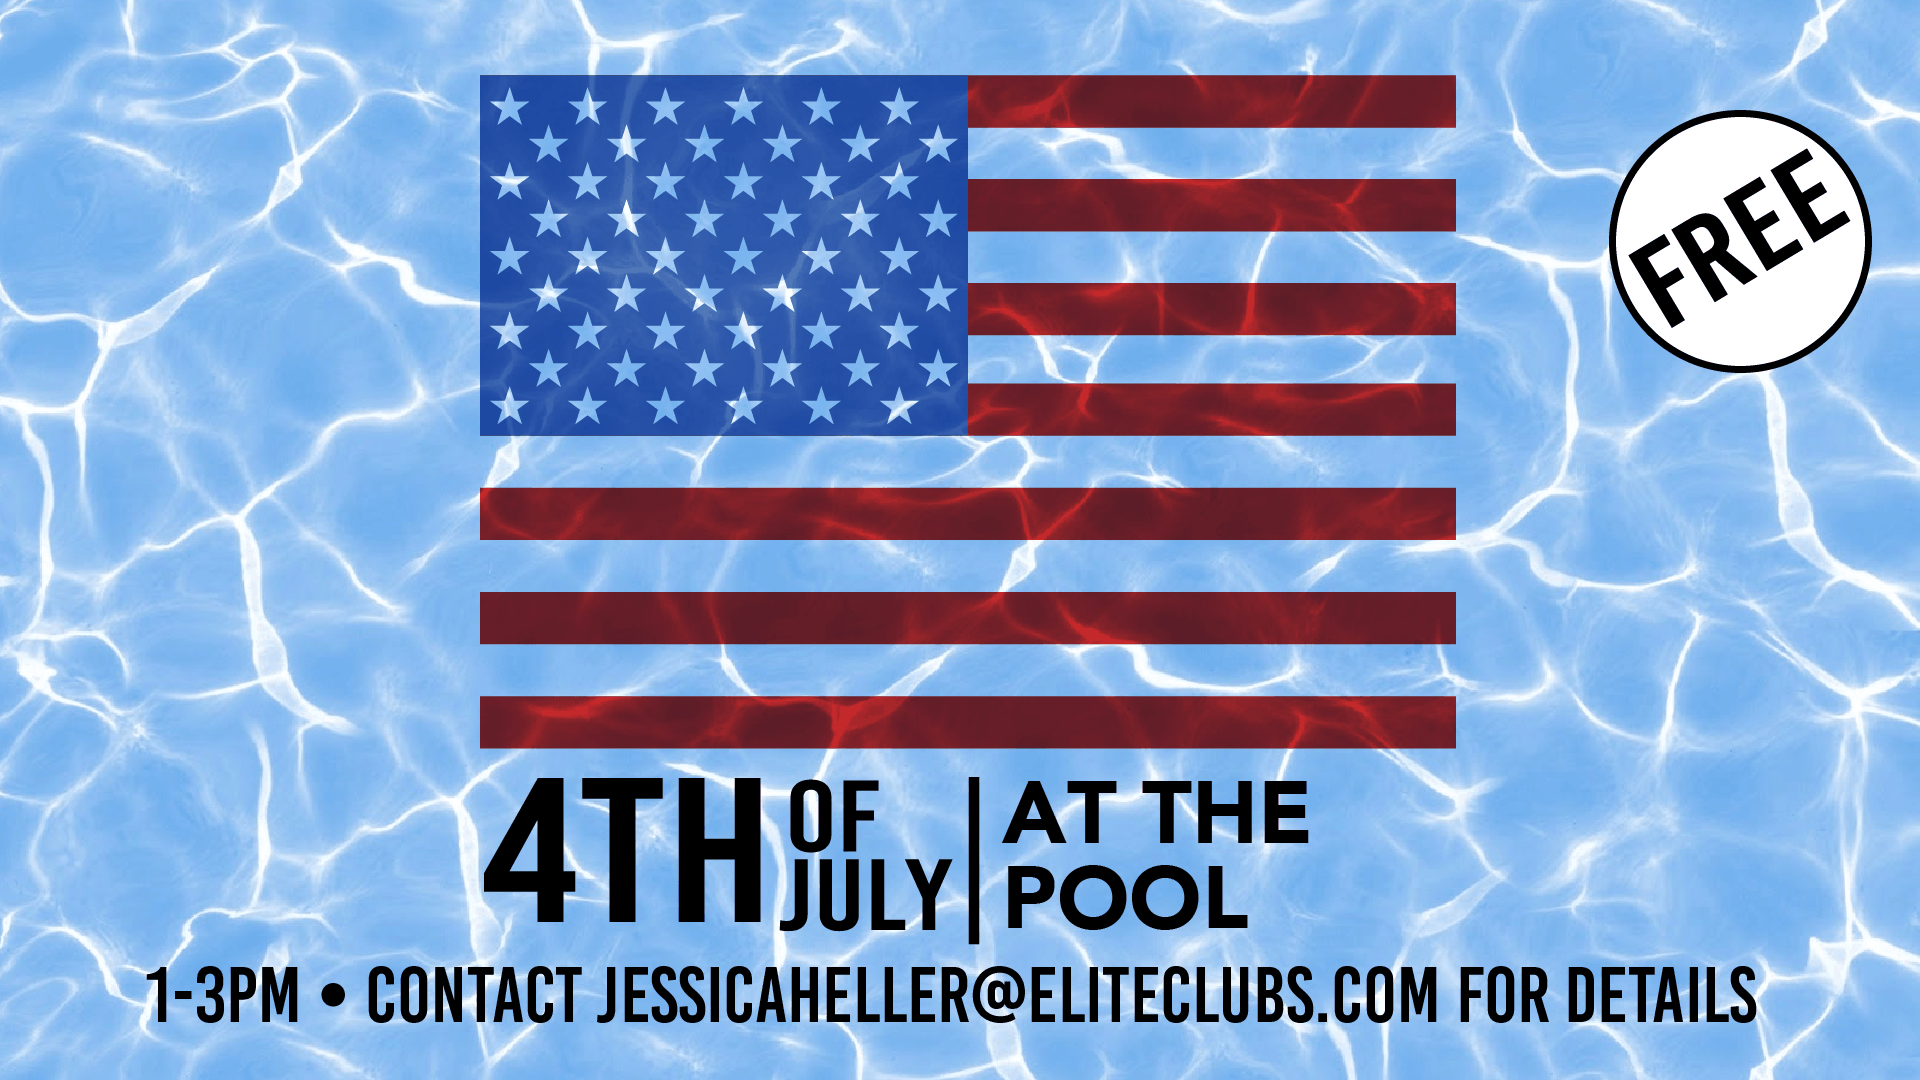 4th of July at the Mequon Pool